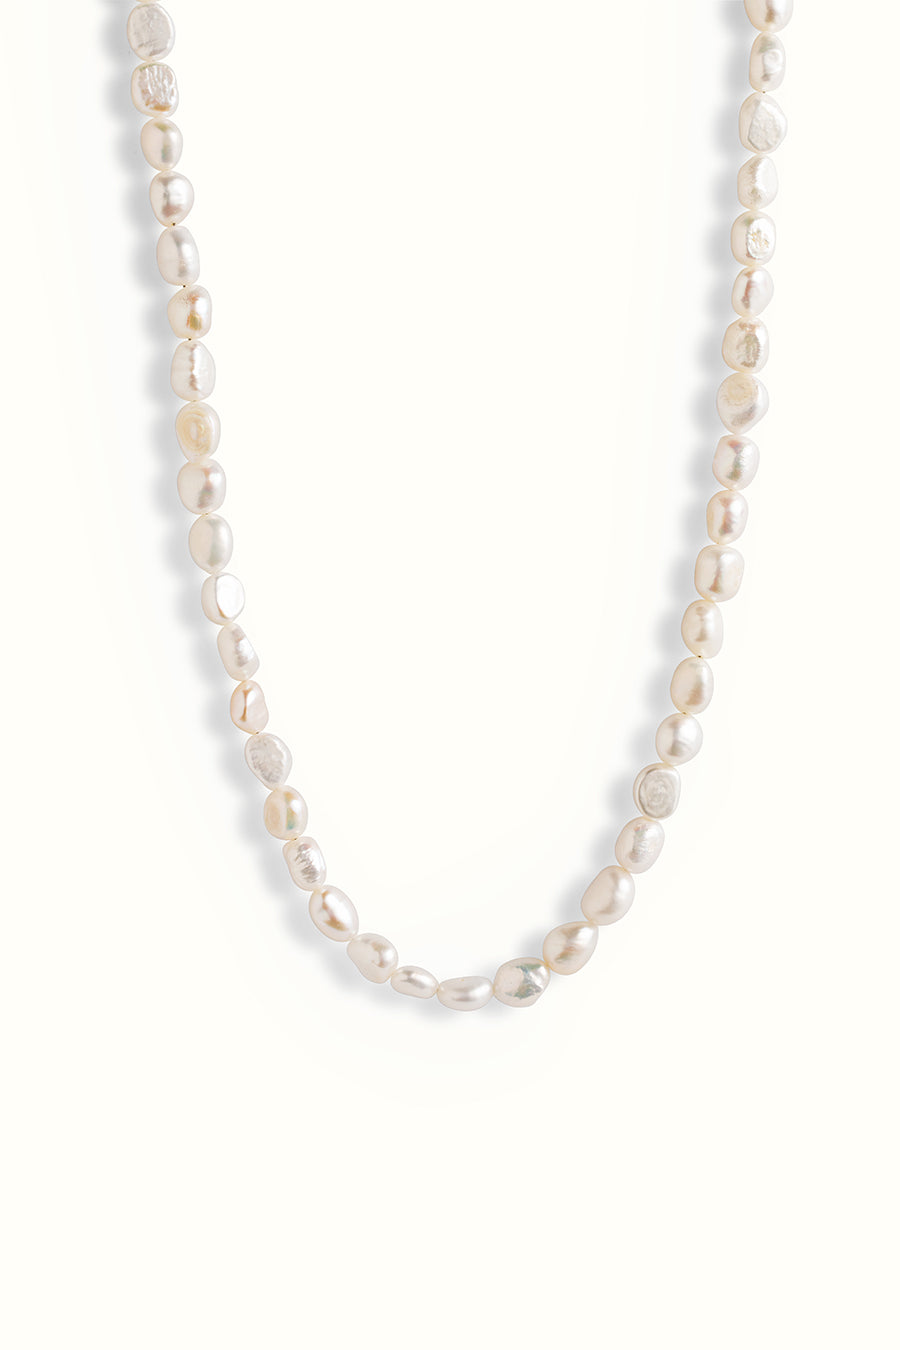 a fresh water pearl necklace on a white background